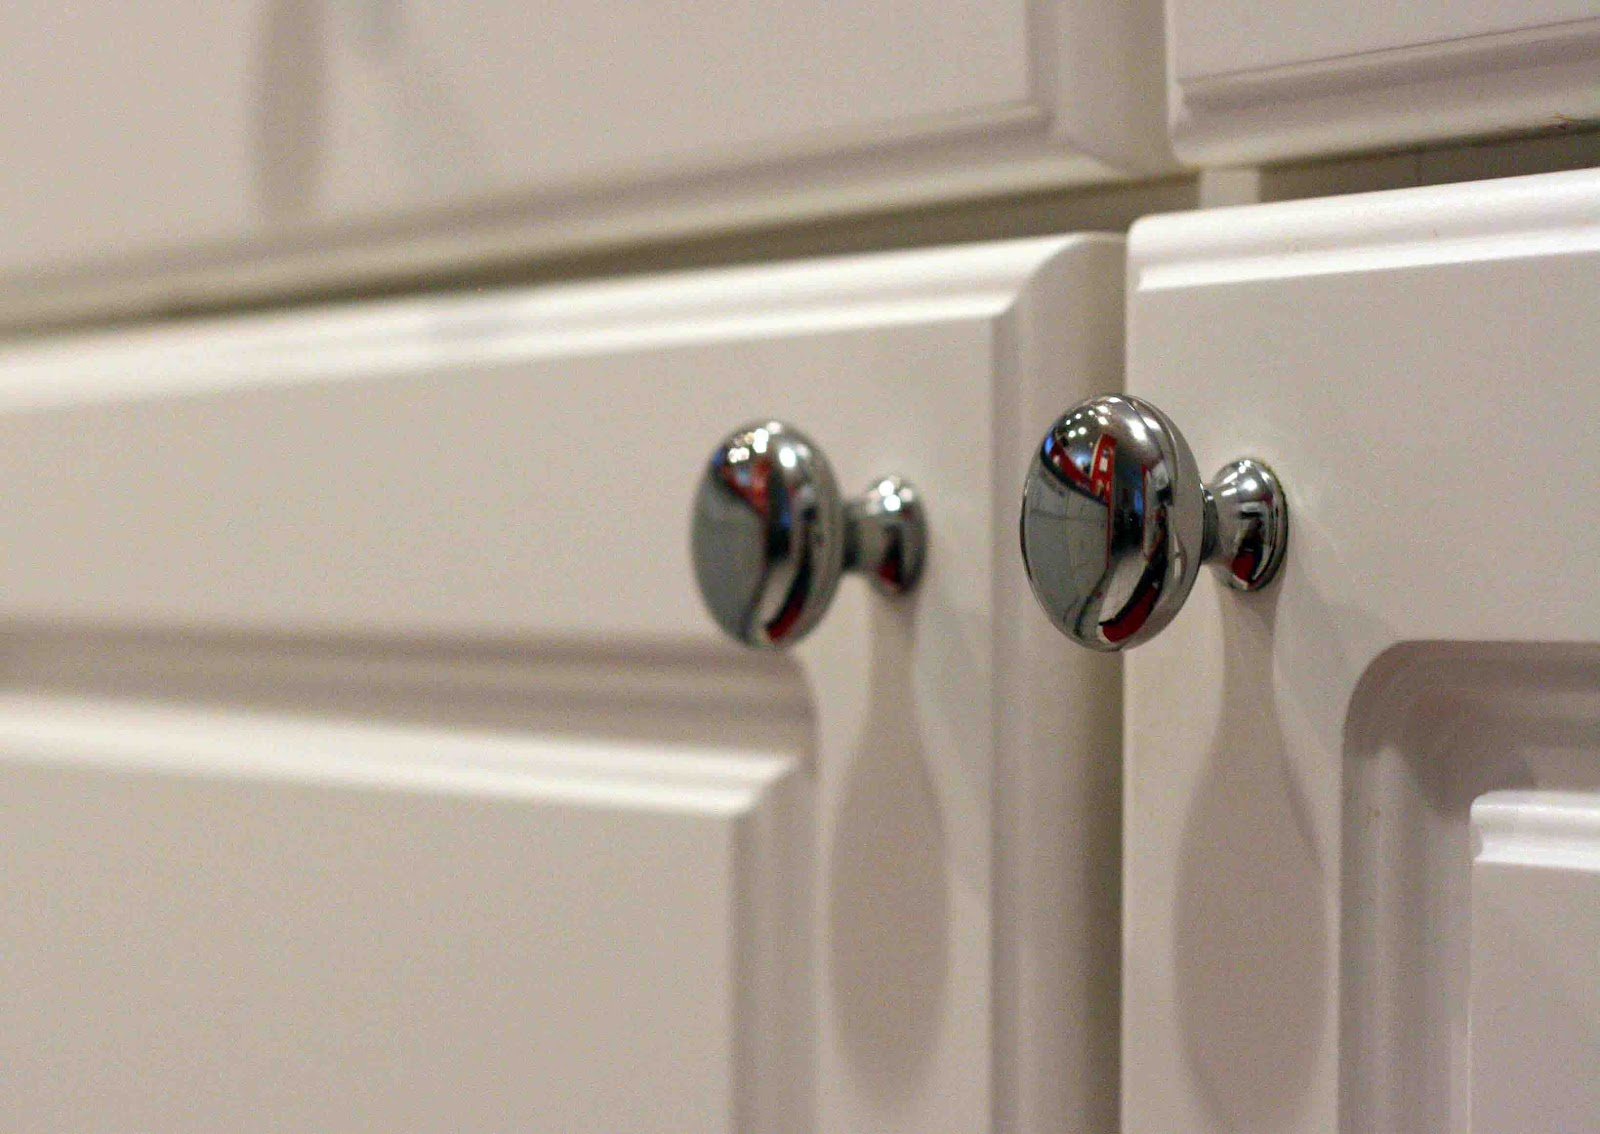 Kitchen Cabinets Knobs Or Pulls Michael Nash Design Build And Homes Fairfax Virginia